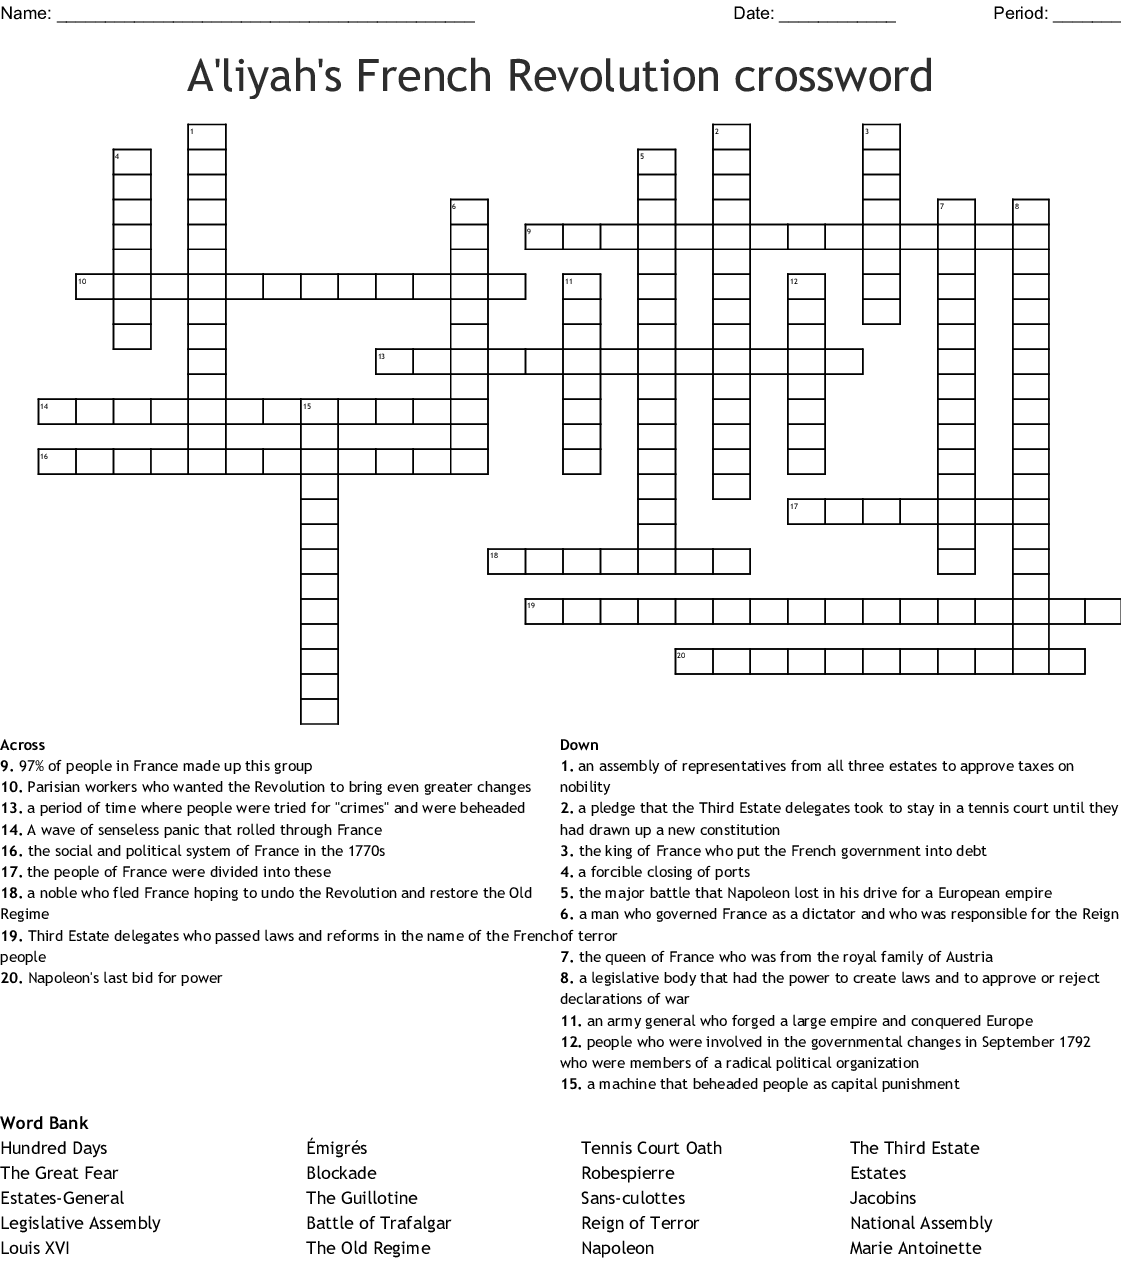 The Three Estates Of French Society Worksheet Answers